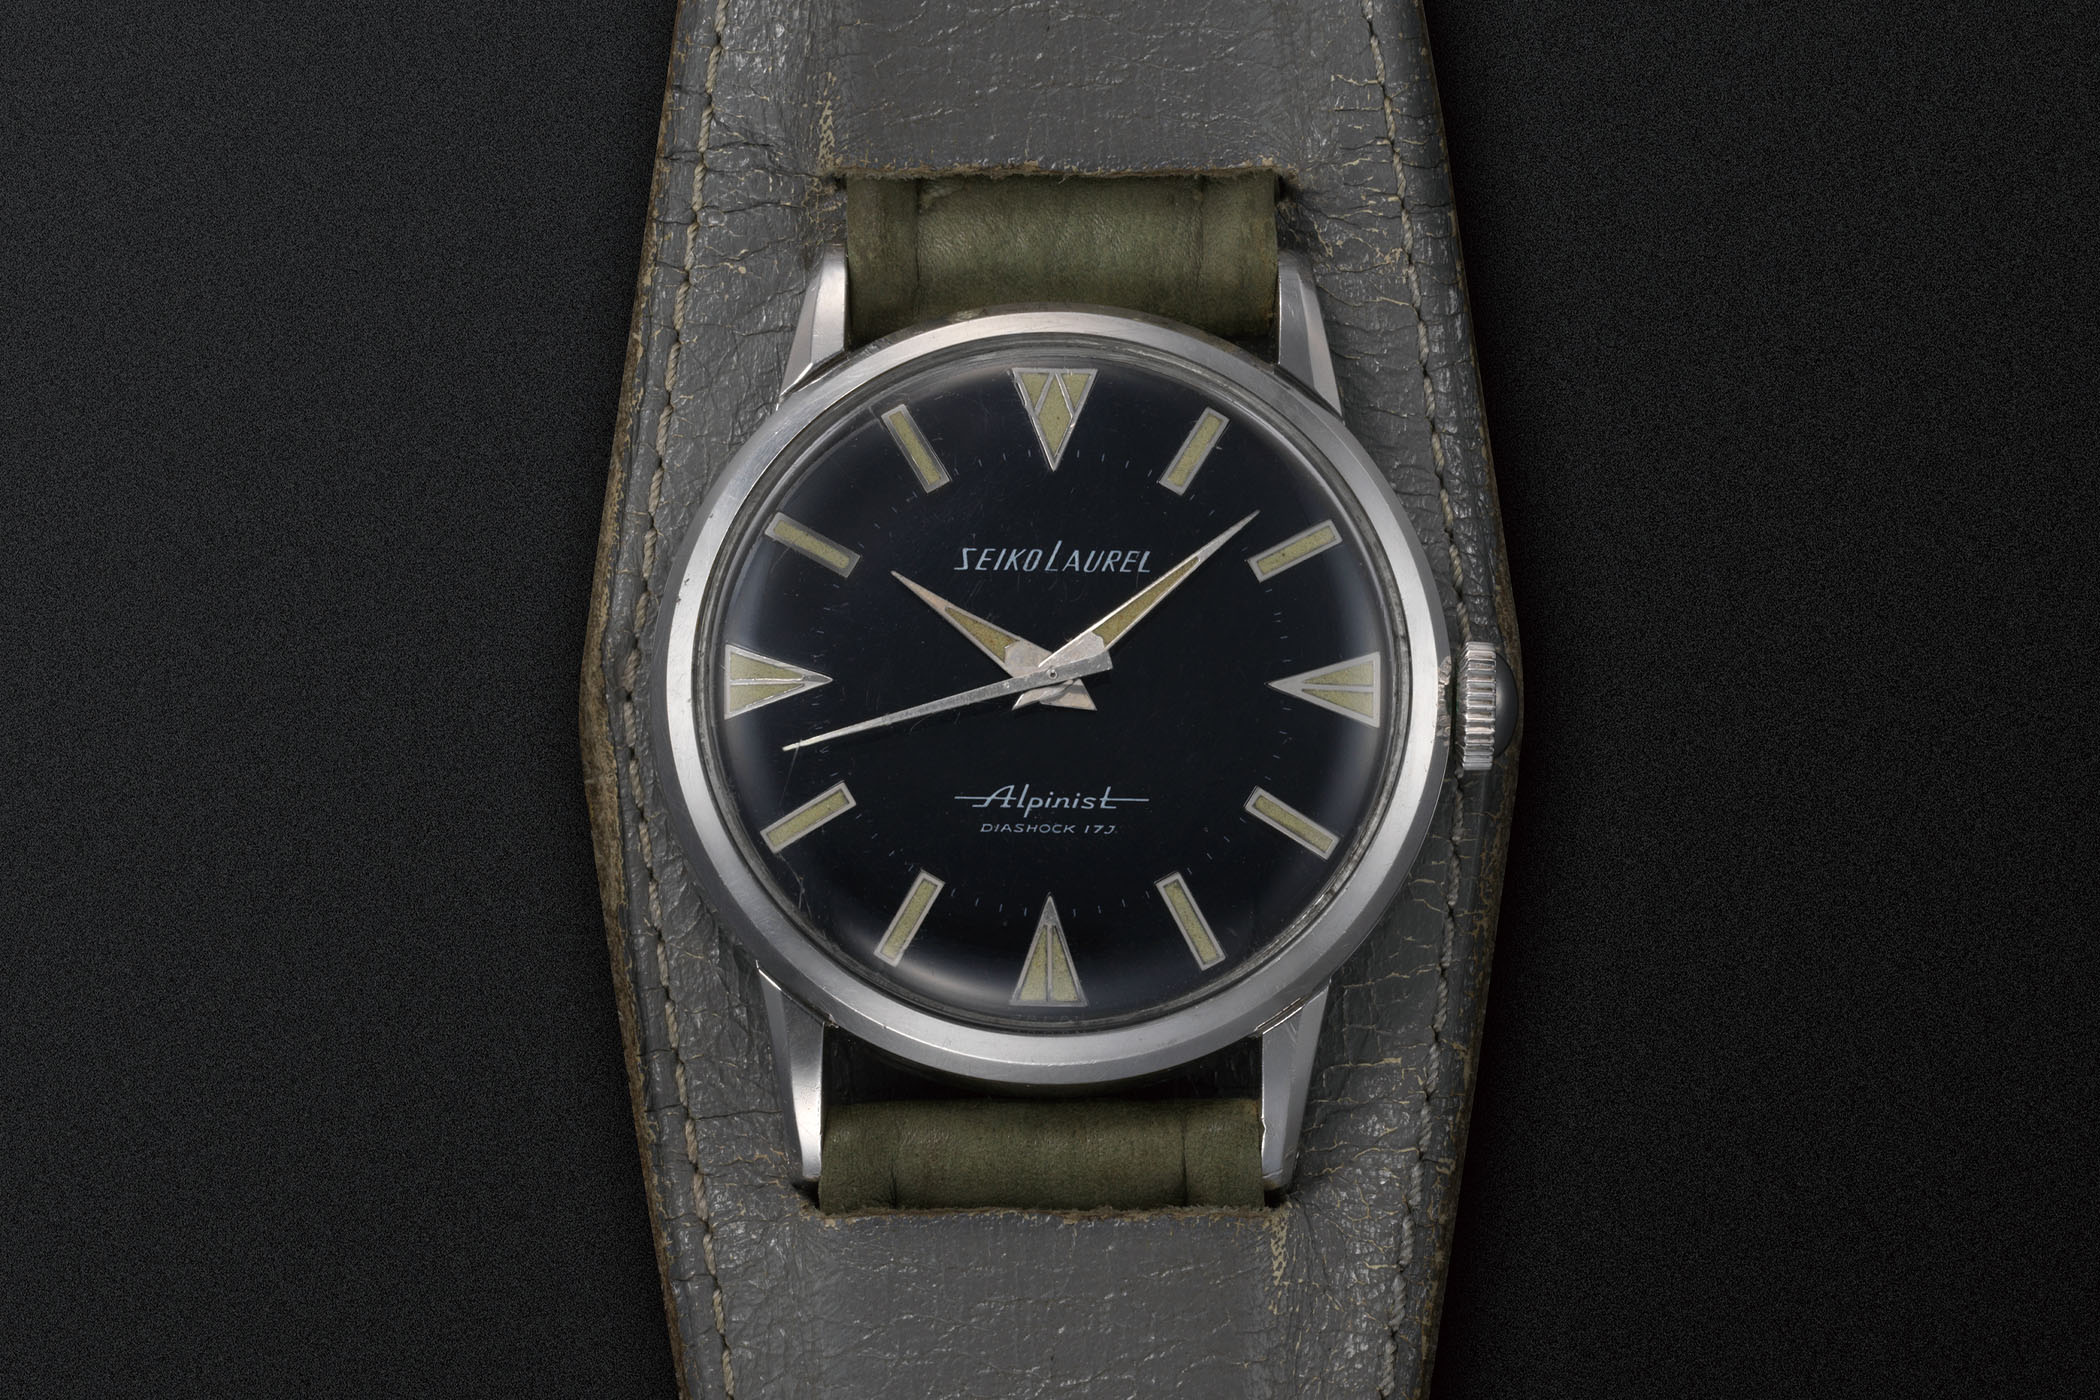 1959 Seiko Alpinist Seiko's first sports watch